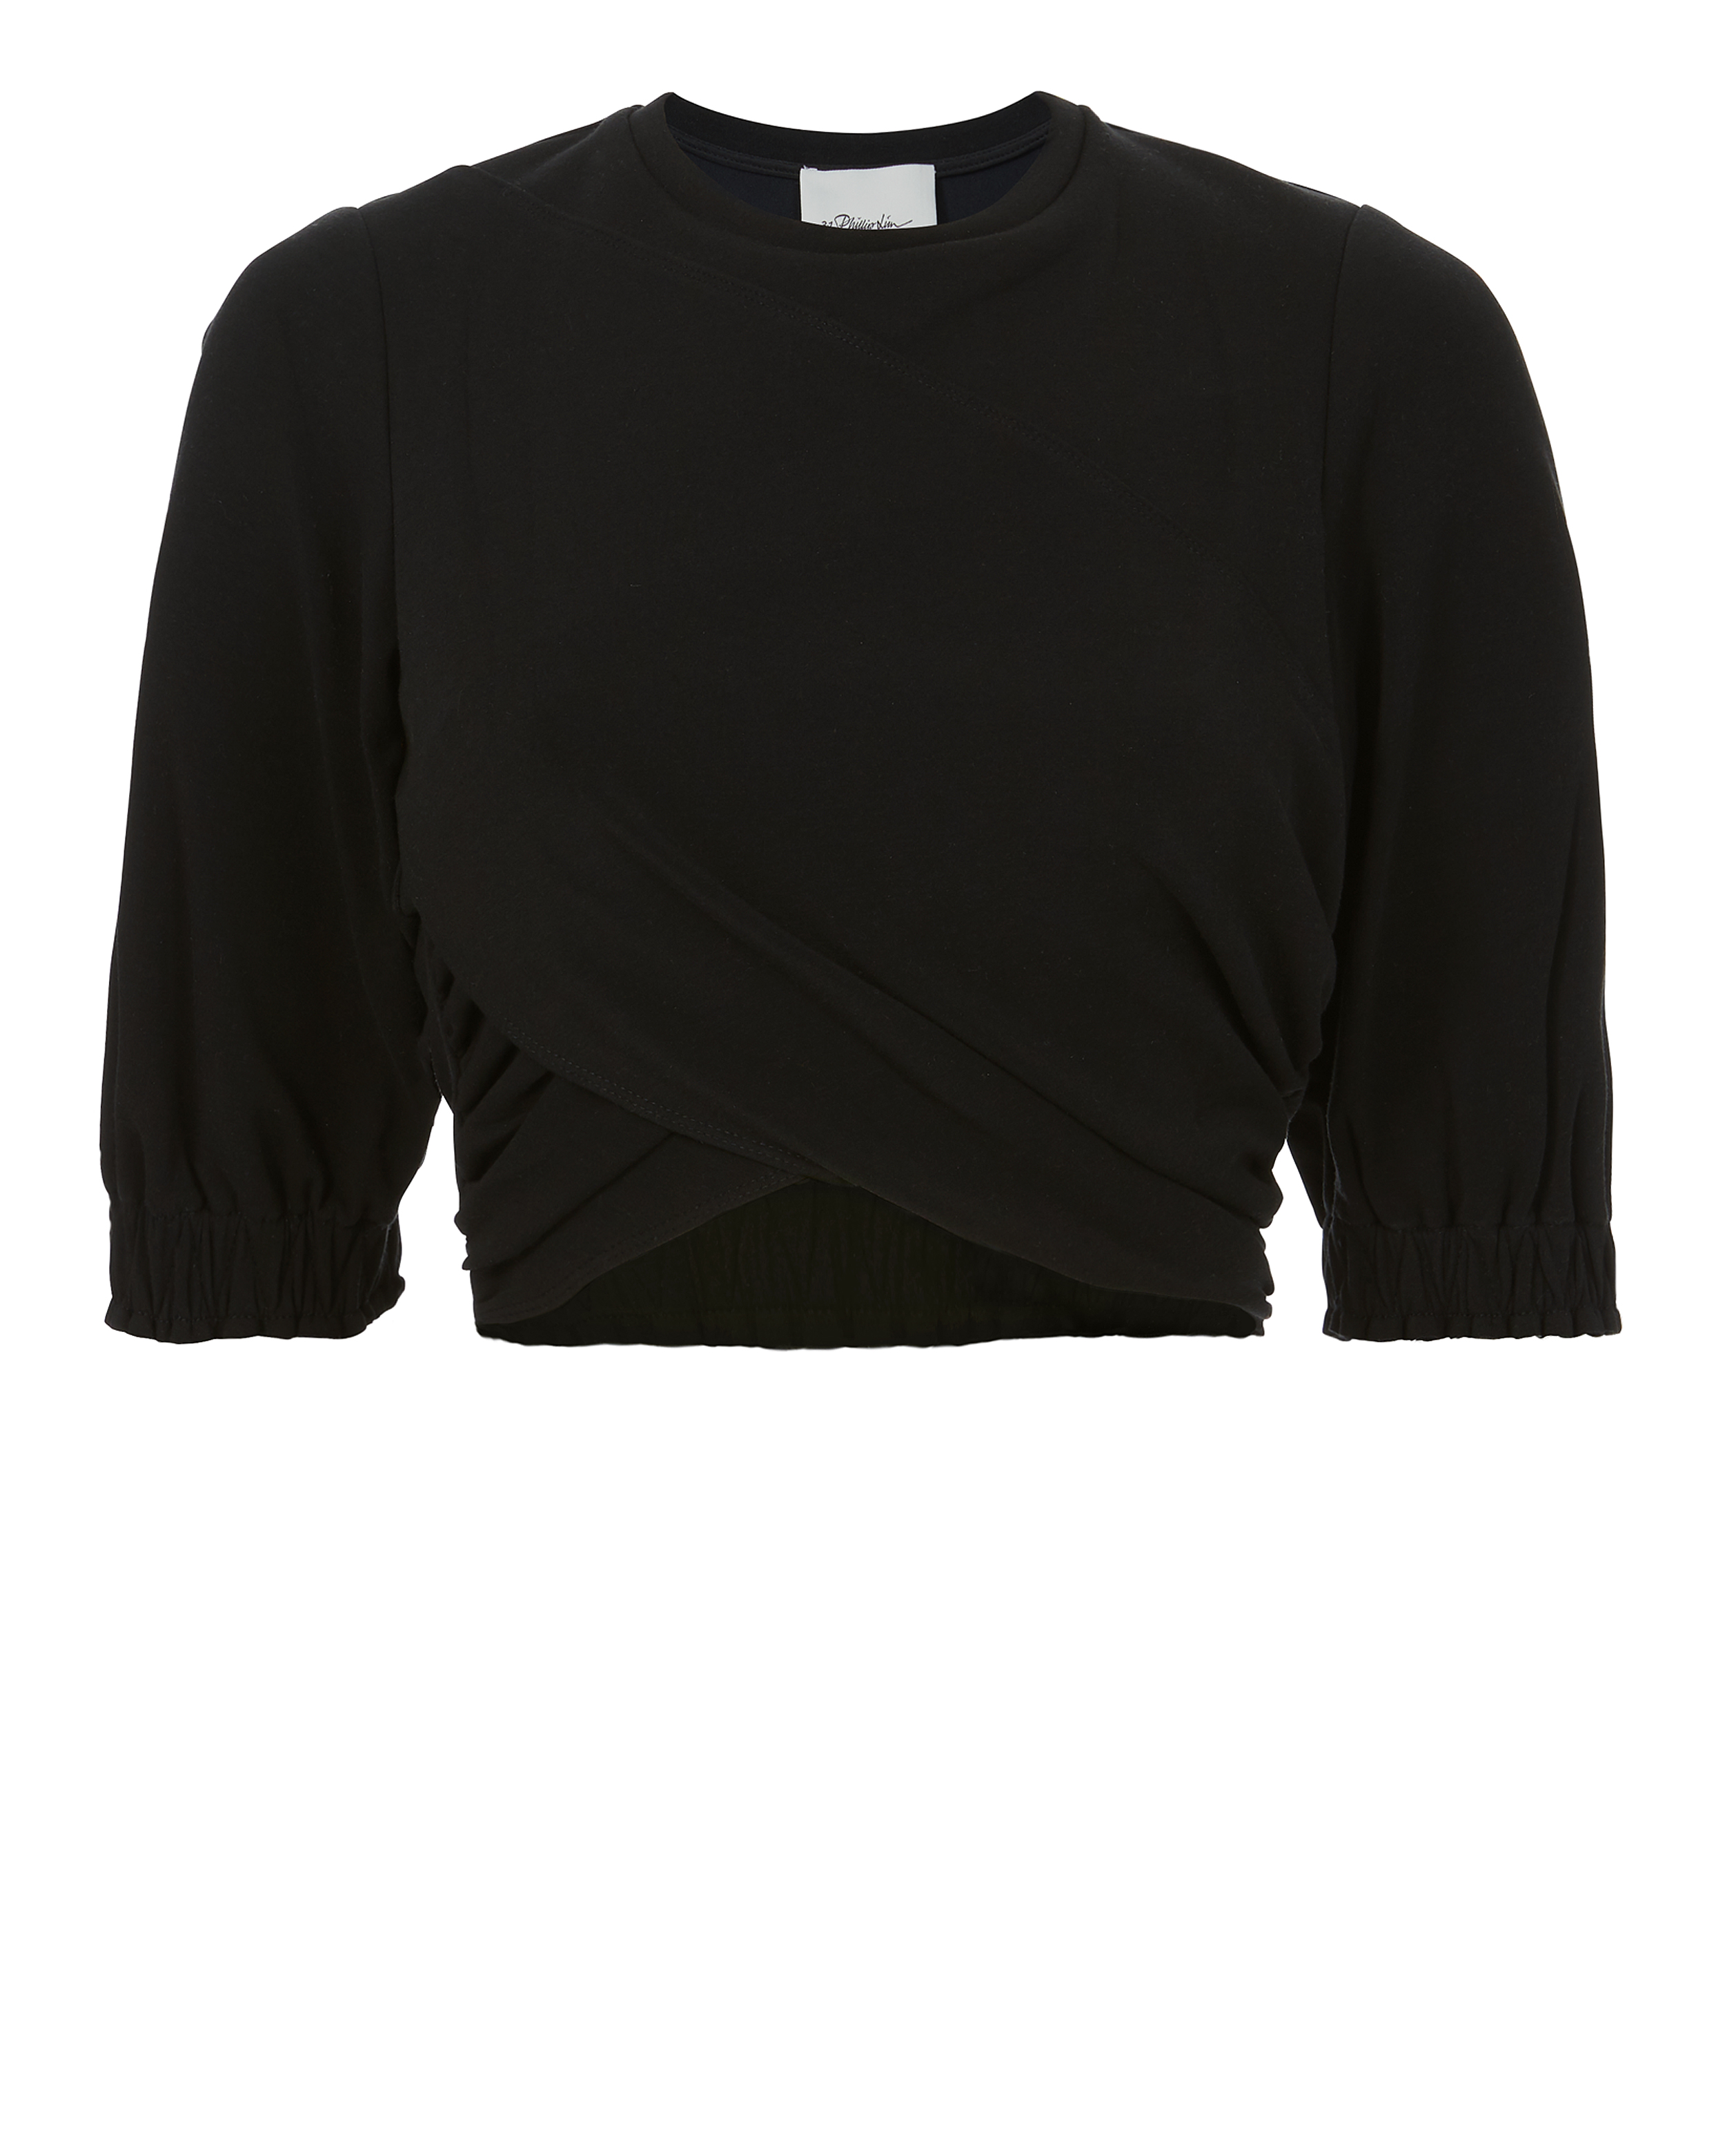 PHILLIP LIM Twisted Cropped Tee